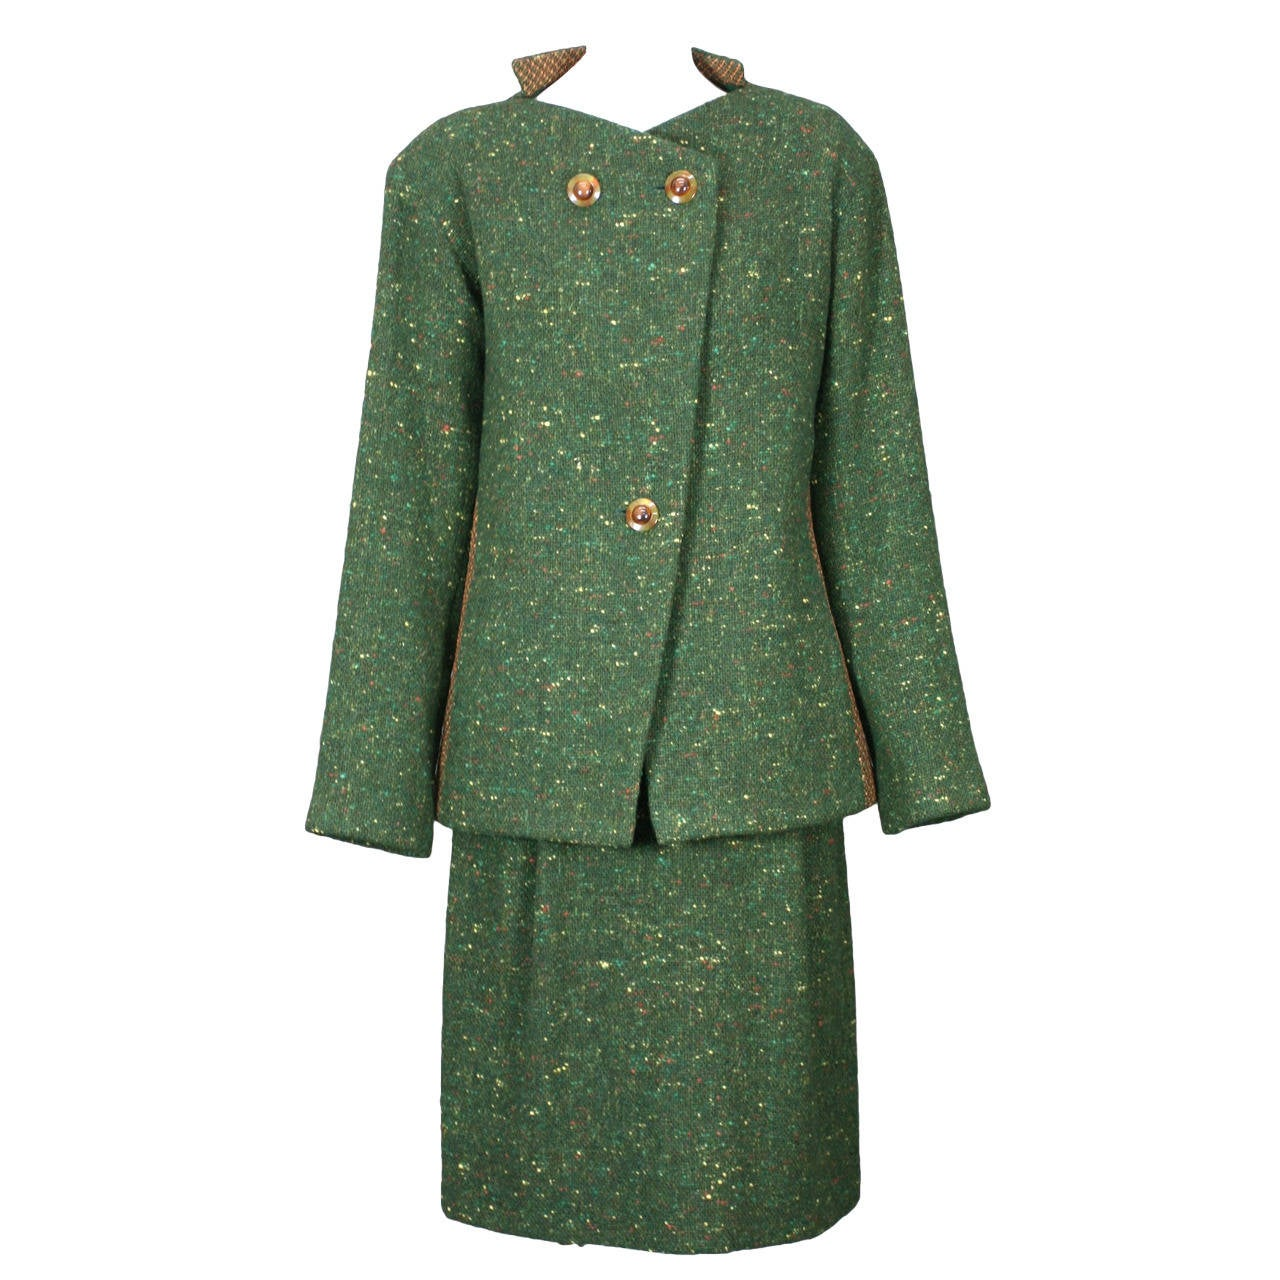 Geoffrey Beene Green Tweed Ensemble